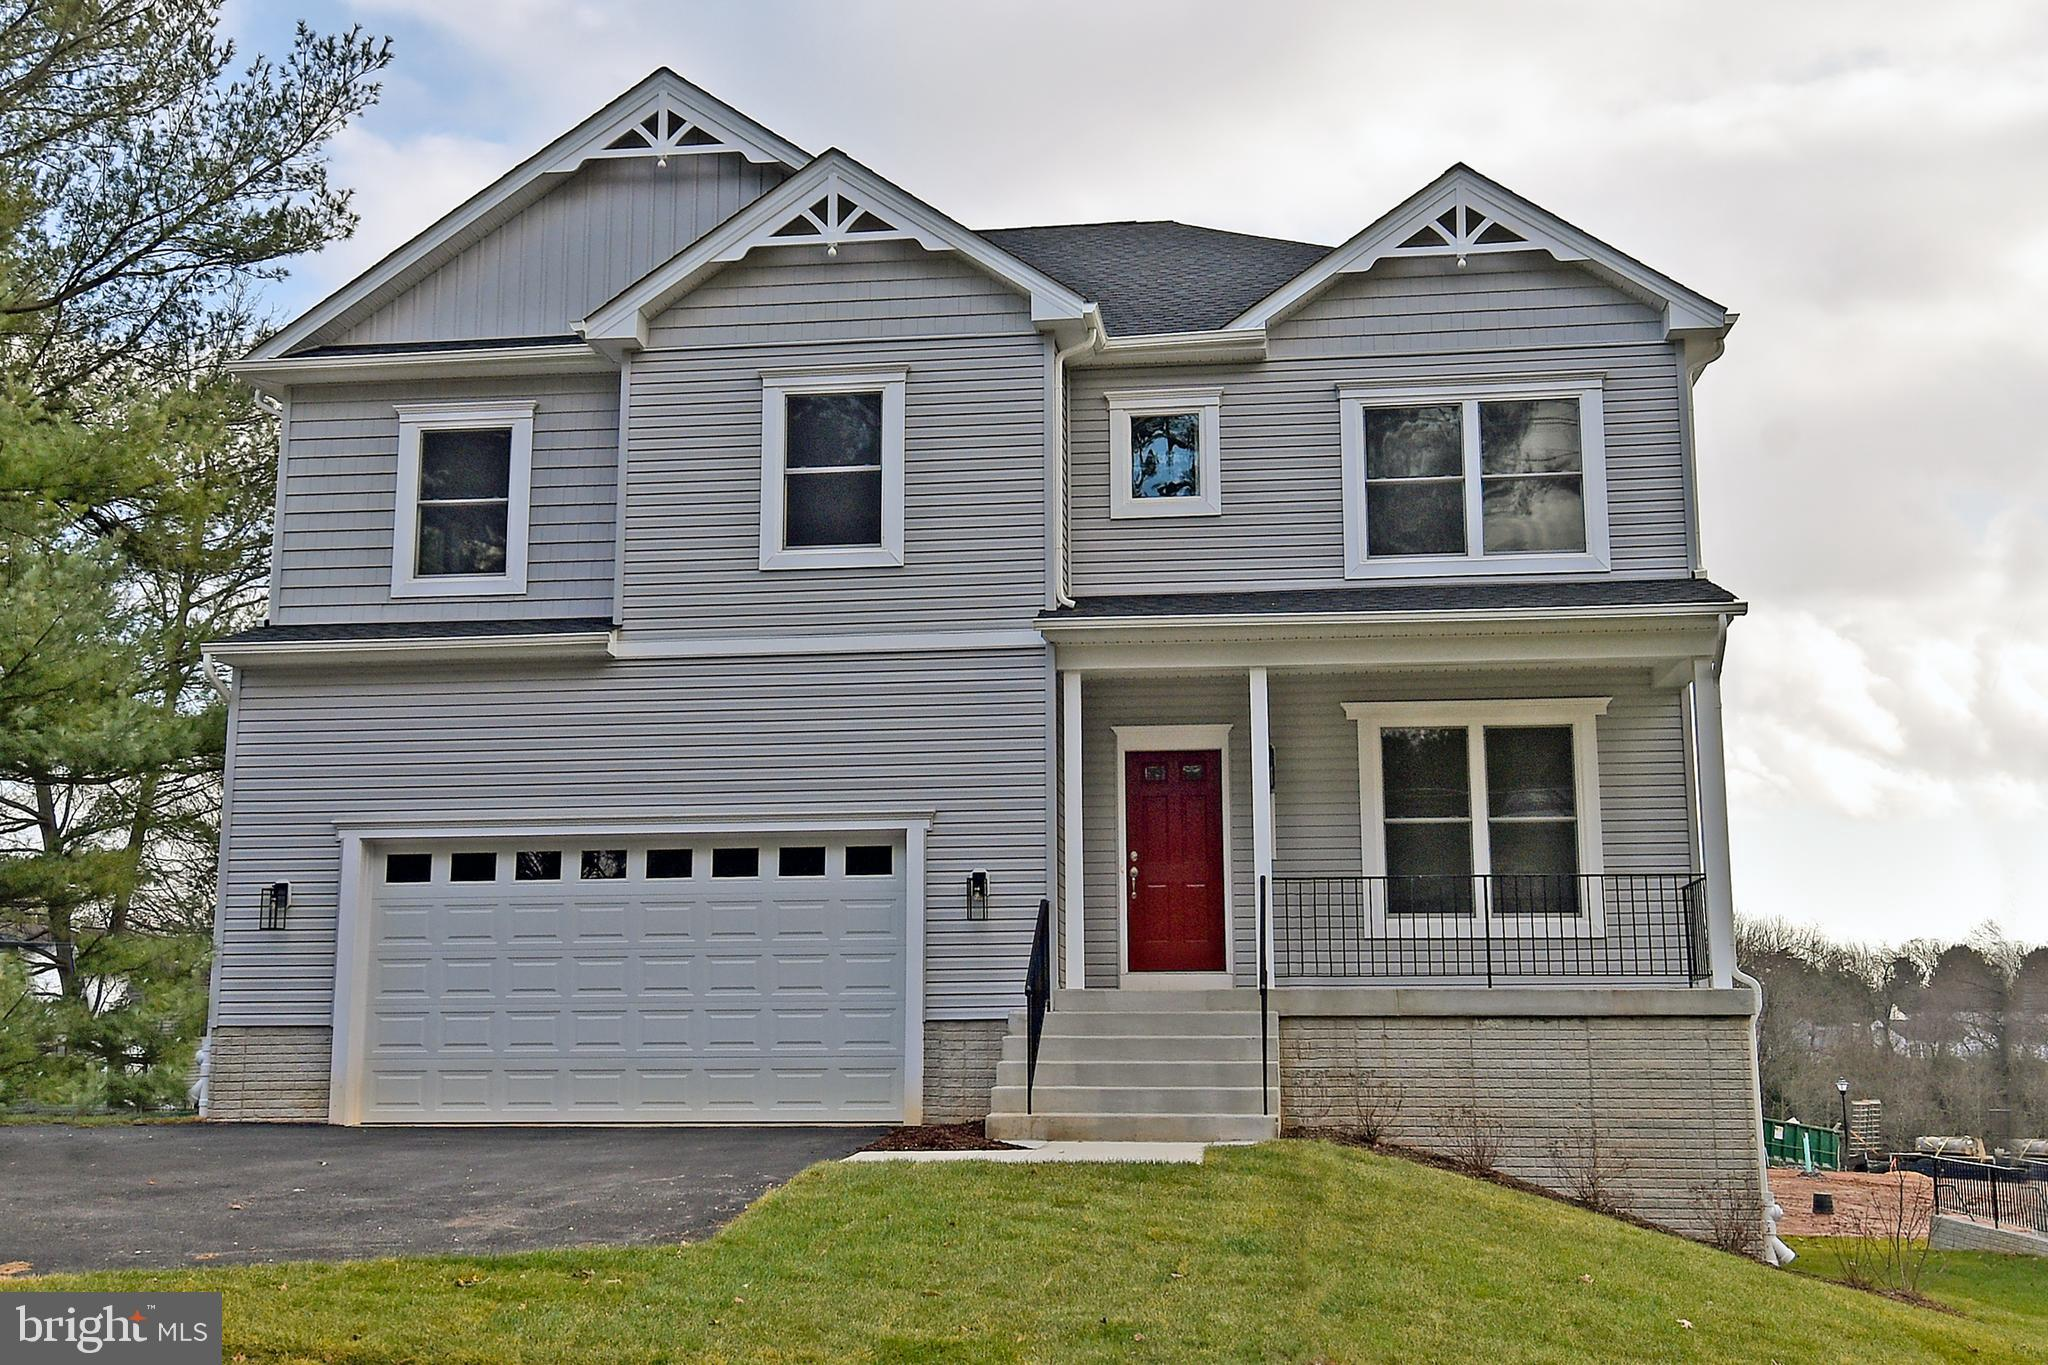 18609 STRAWBERRY KNOLL ROAD, GAITHERSBURG, MD 20879